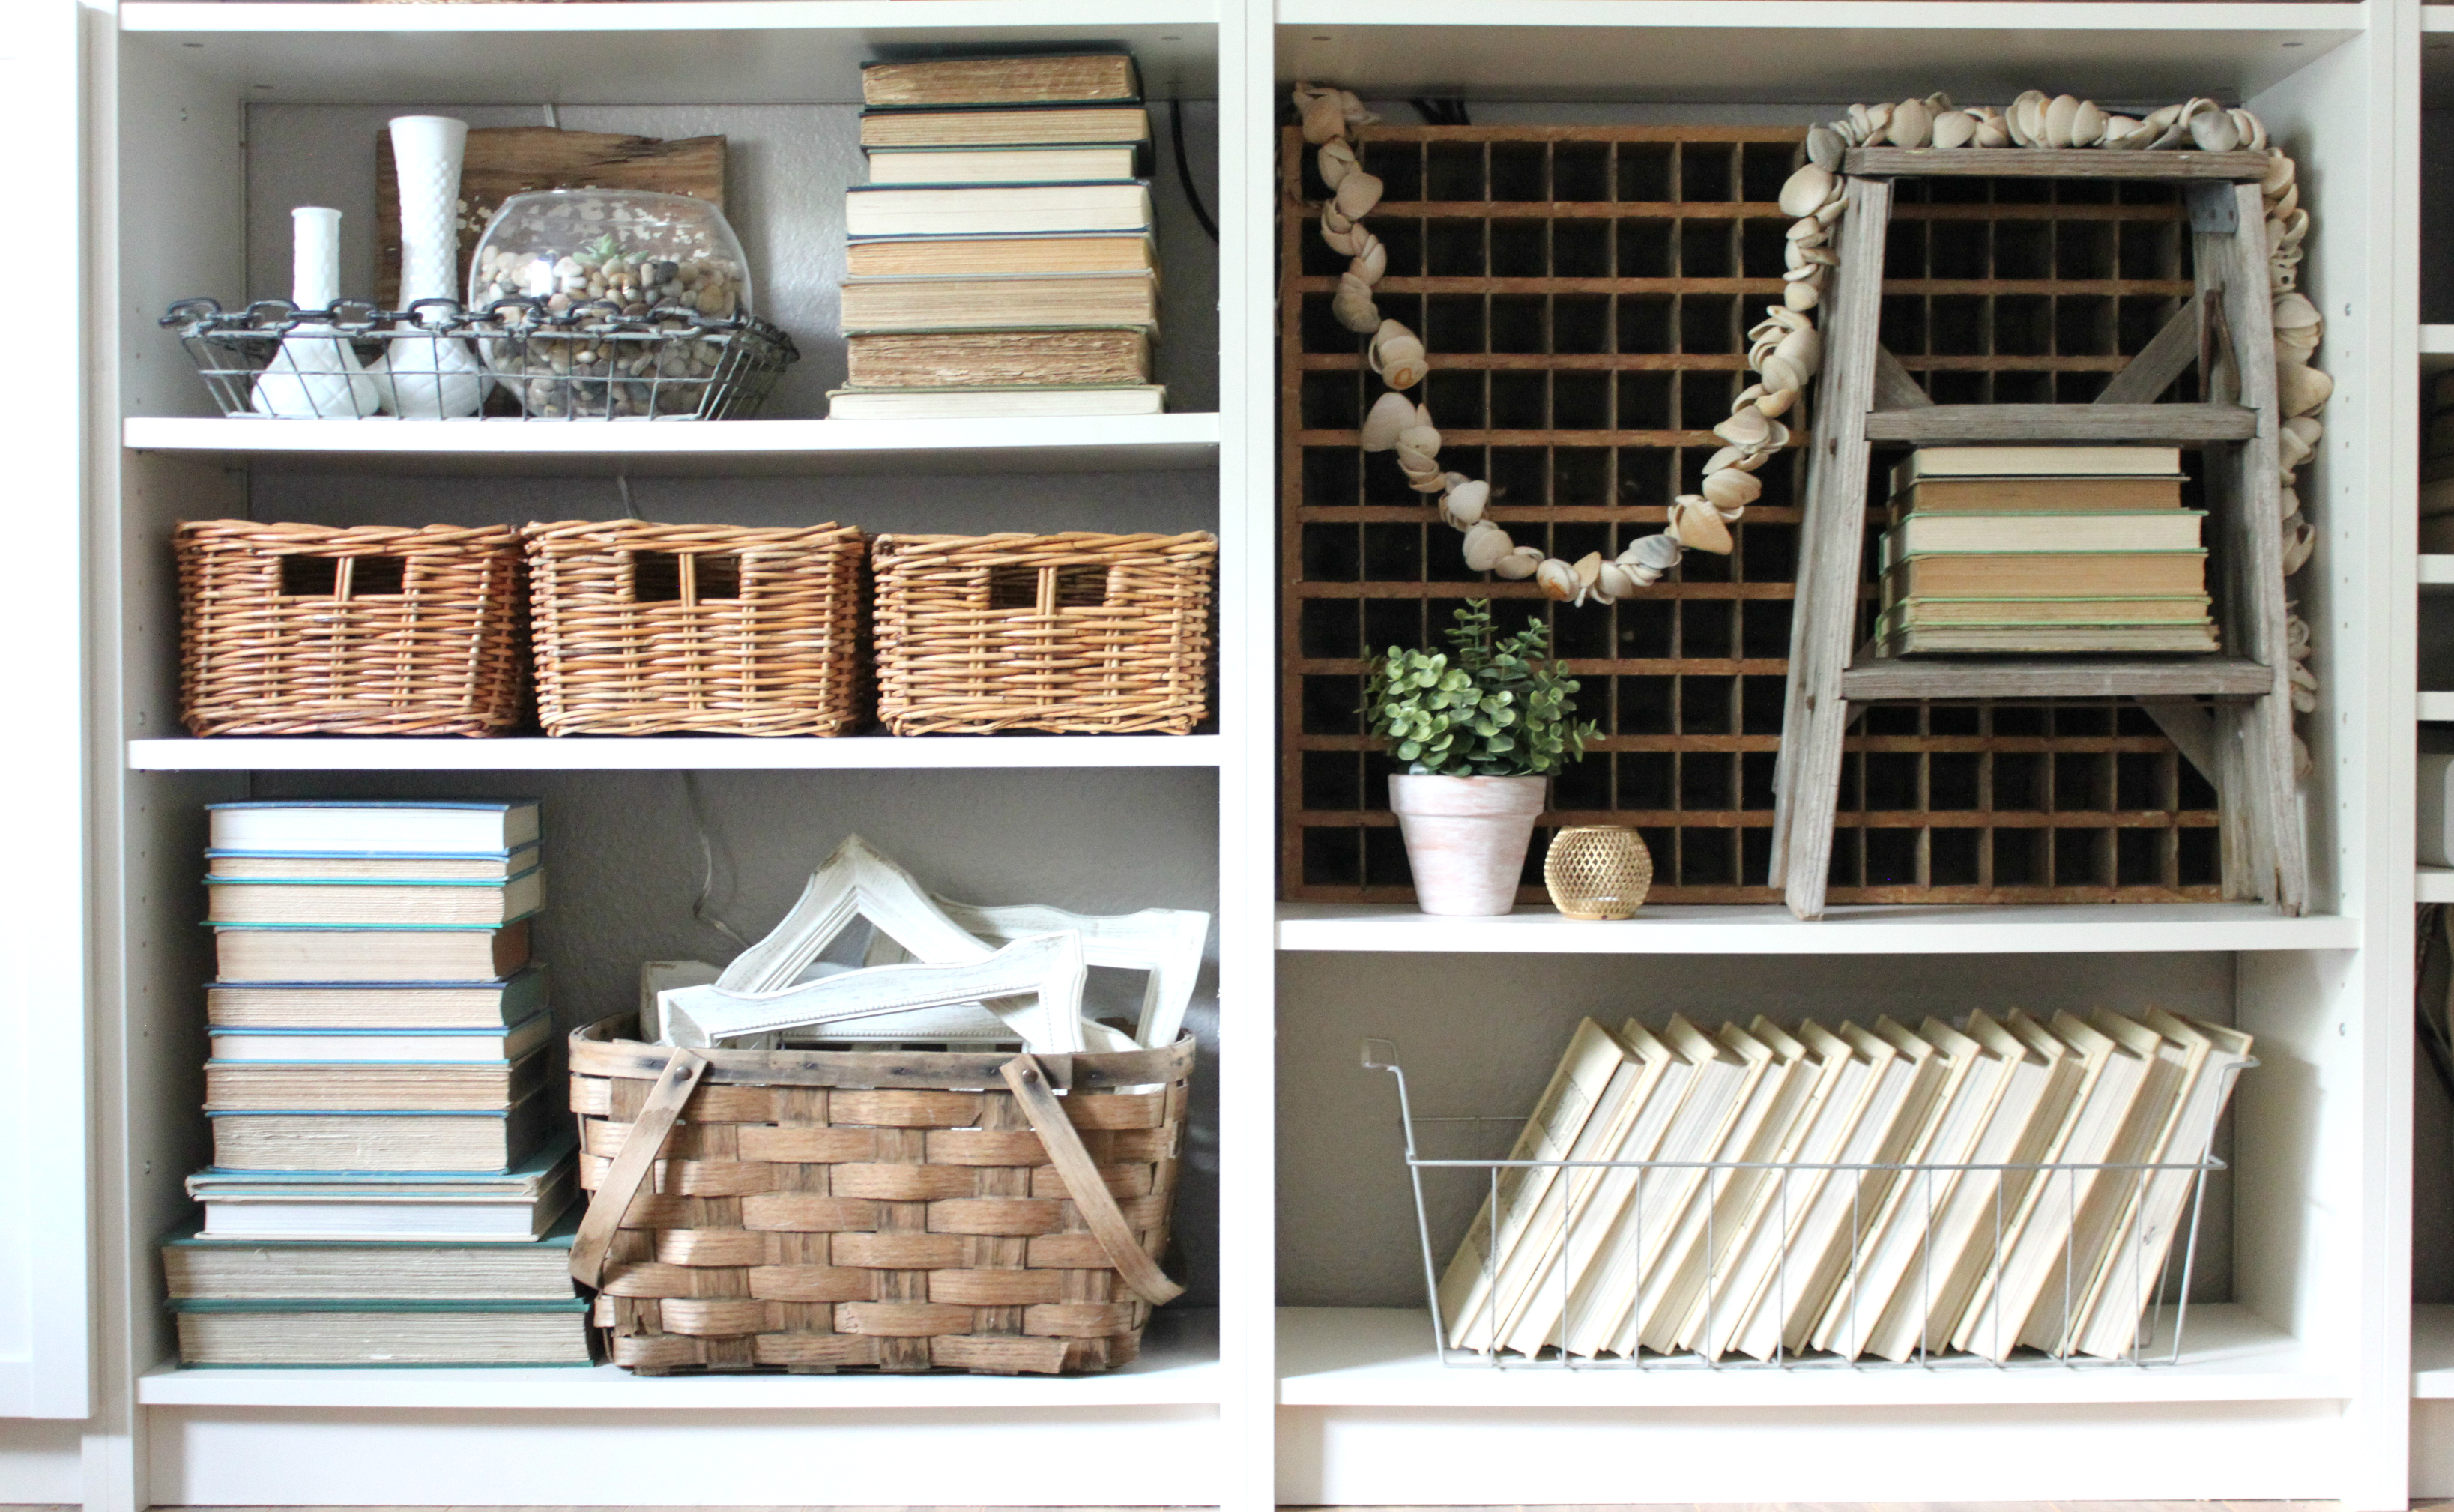 ikea-baskets-bookcase-billy